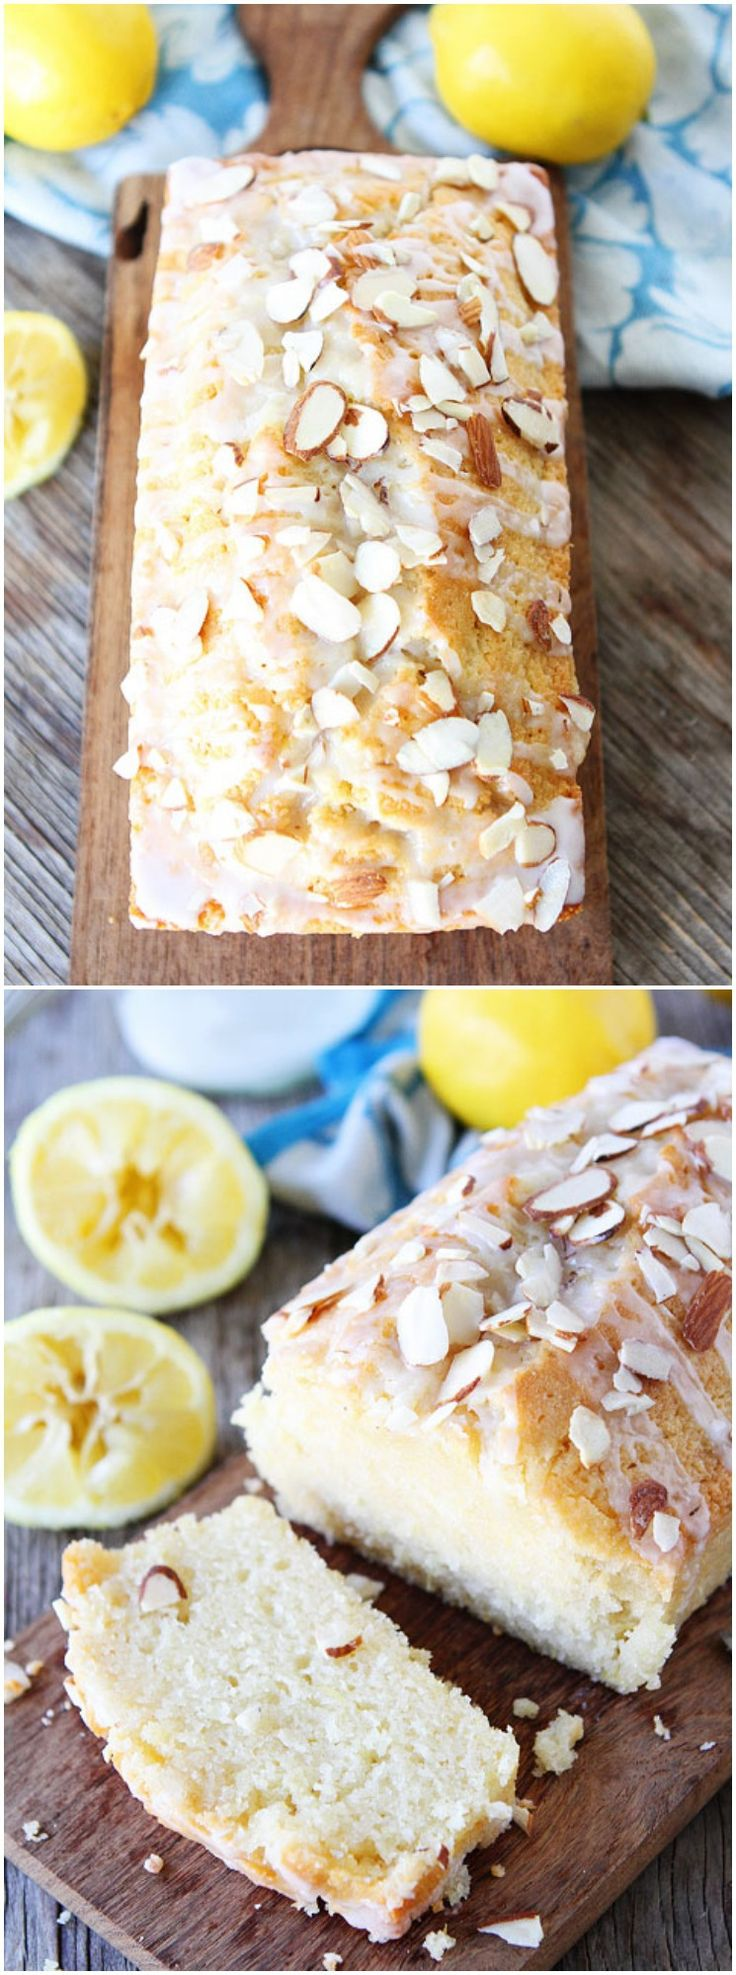 Lemon Almond Bread Recipe on twopeasandtheirpod.com My favorite quick bread recipe! Perfect for citrus season and it's dairy free too!